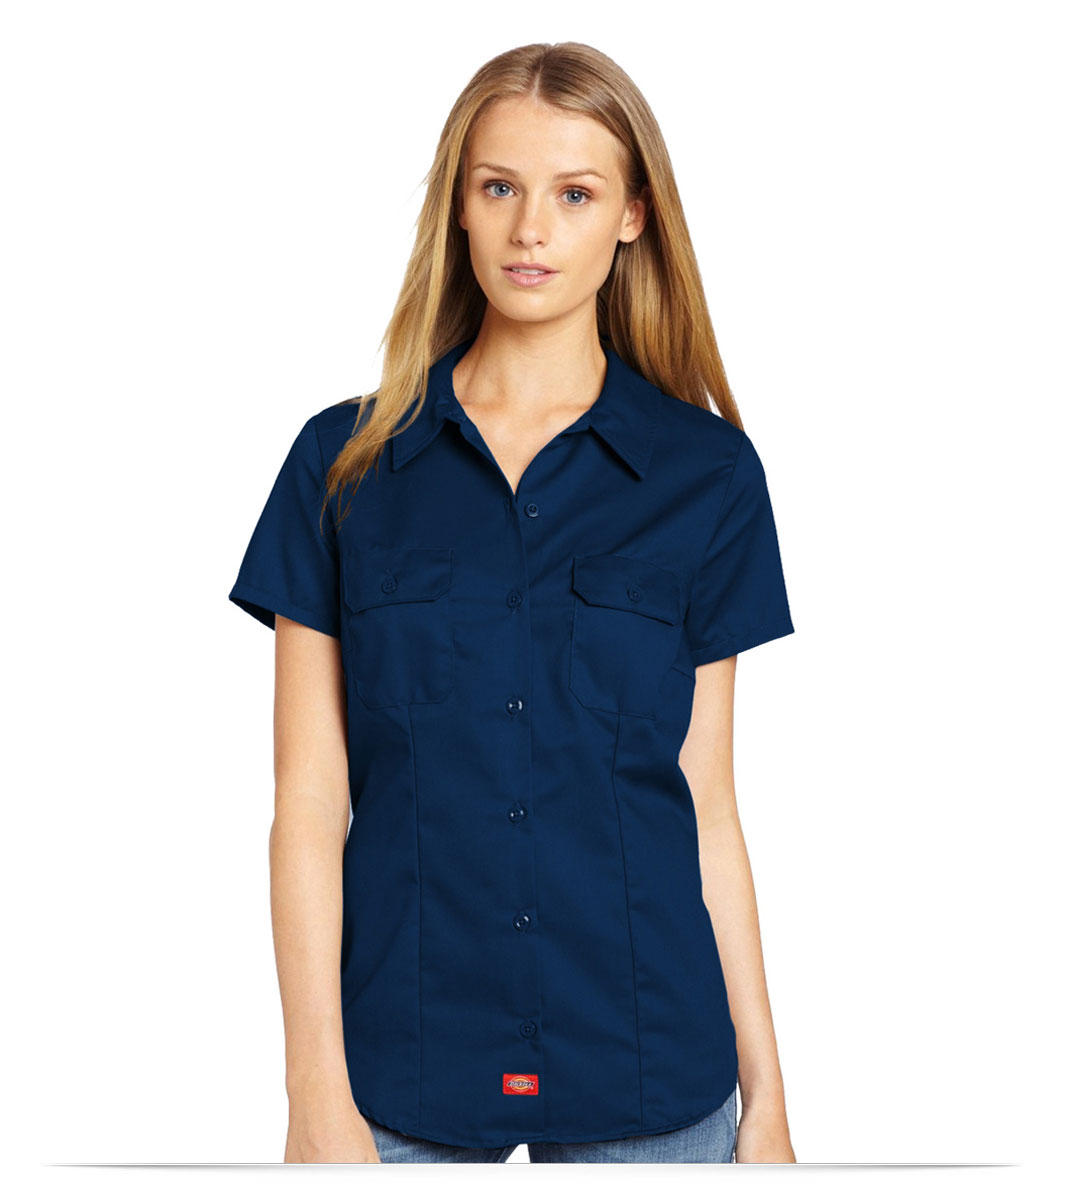 Design embroidered dickies womens s s work shirt online at for Embroidered dickies work shirts